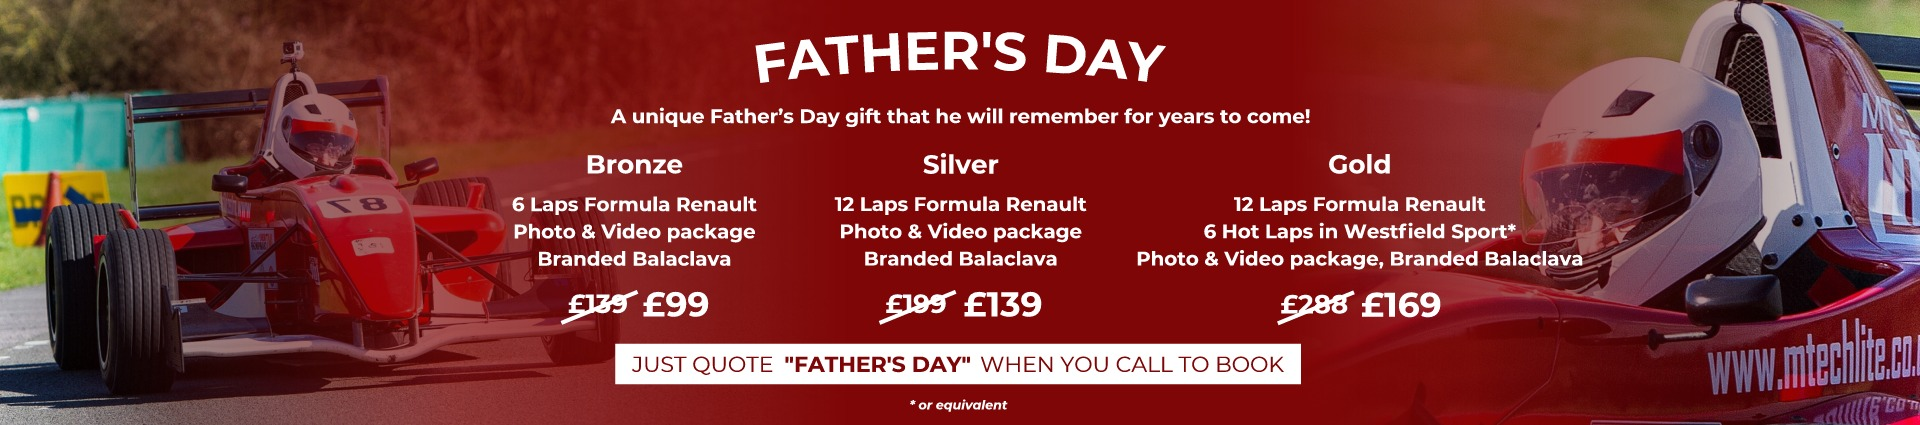 1-june20-fathers-day